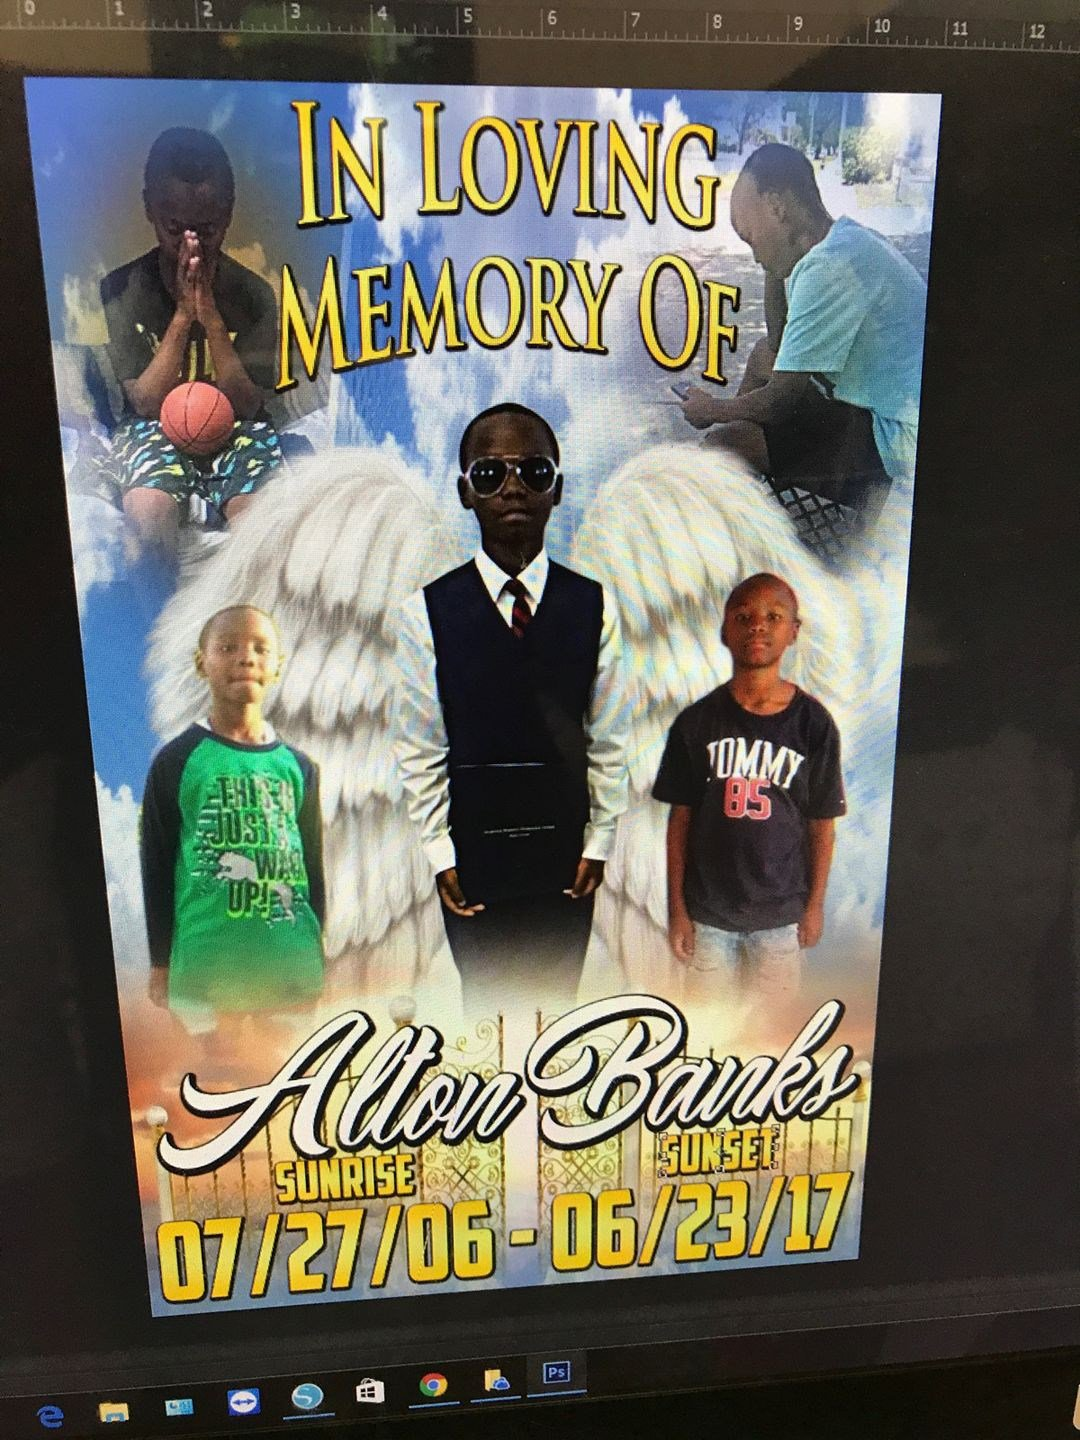 The program for Alton's funeral. (Source: Facebook/Shantell Banks)